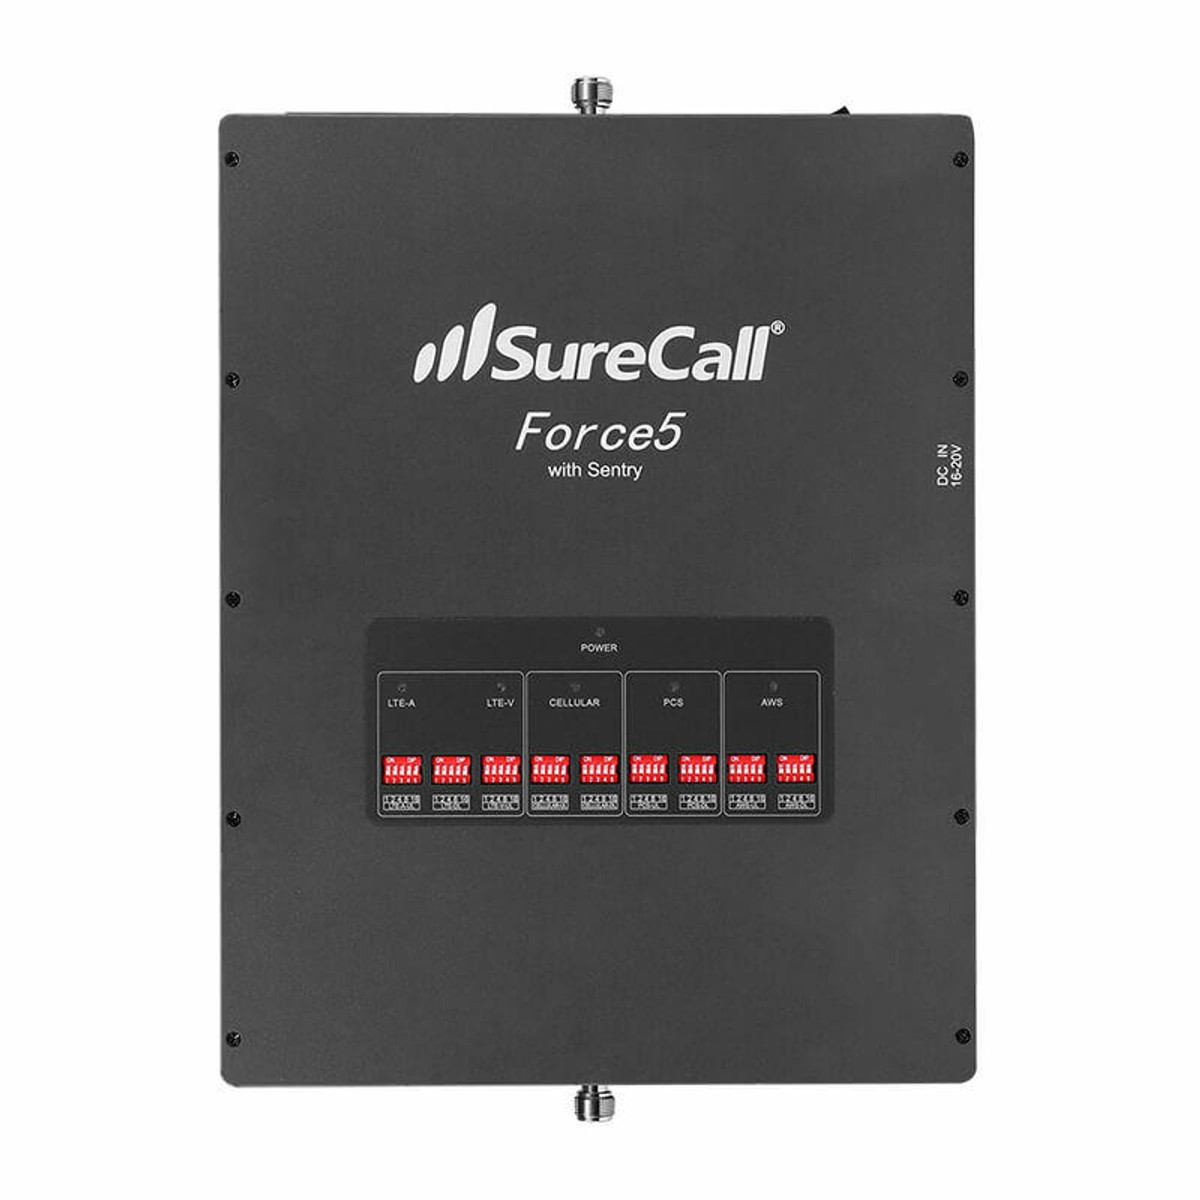 SureCall SureCall Force5 2.0 Signal Booster Kit with 1 Inside and 1 Outside Antenna